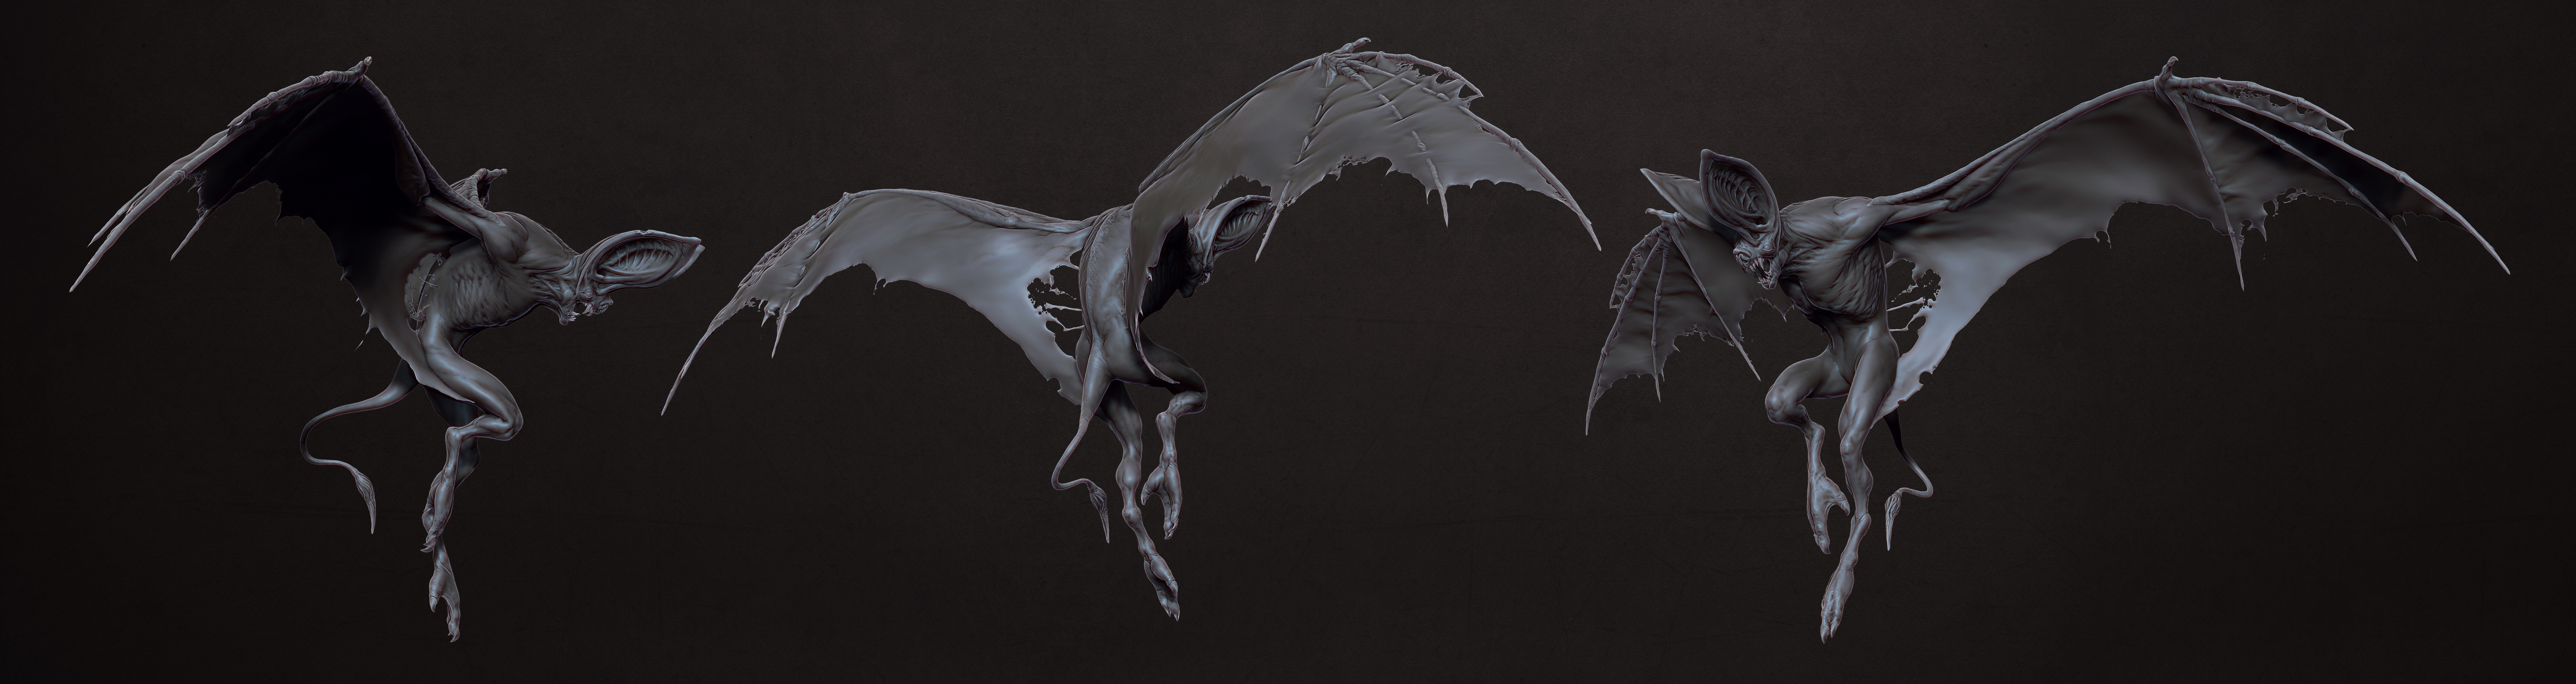 Bat Creature Concept Turnaround by kassarts